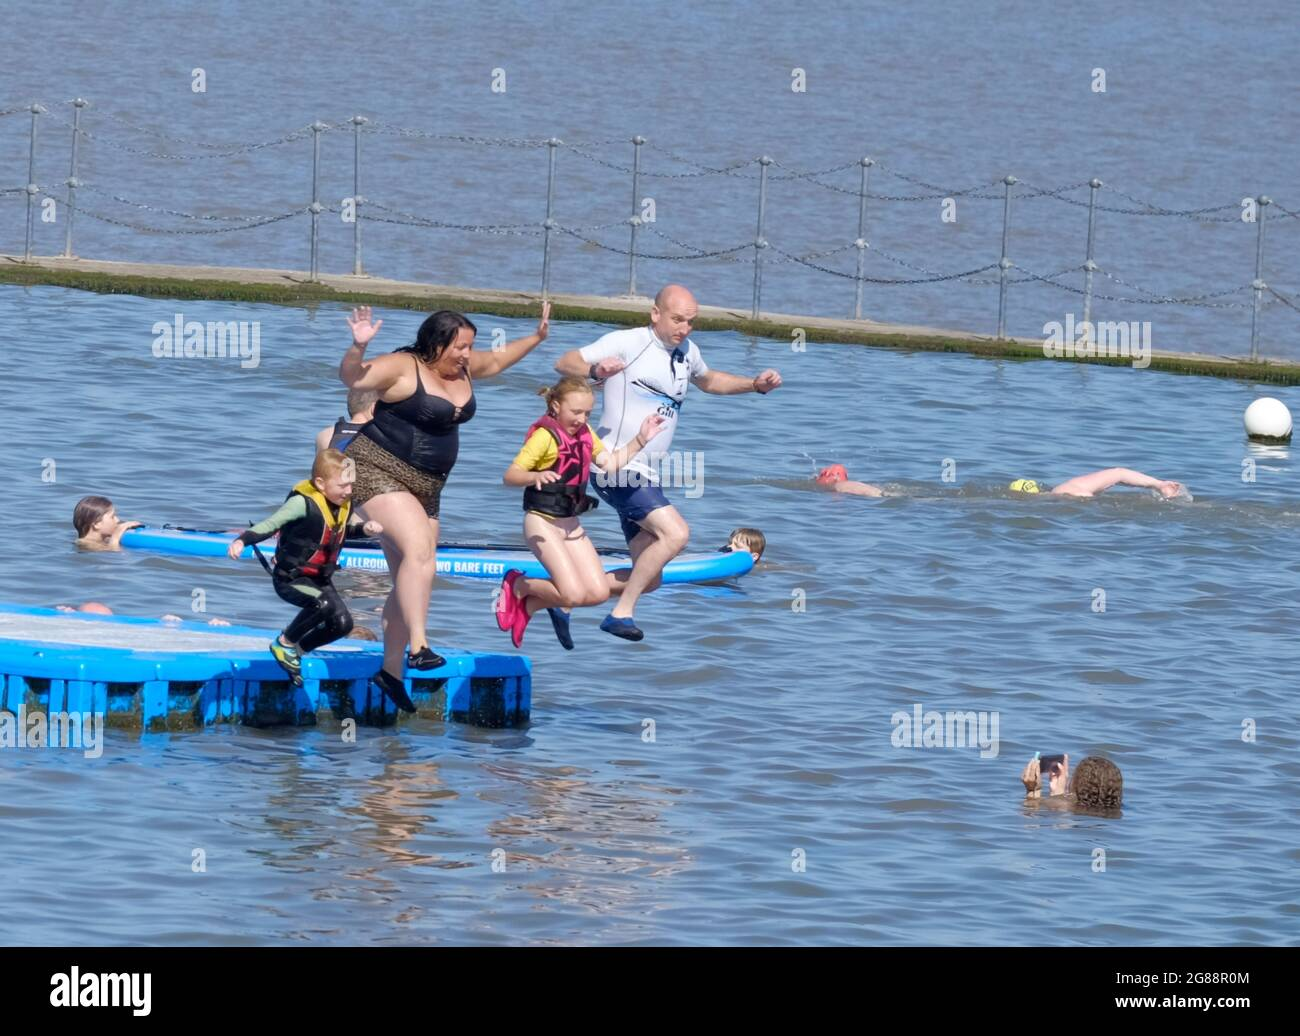 clevedon-somerset-uk-18th-july-2021-family-fun-clevedon-marine-lake-draws-in-people-looking-to-cool-down-on-a-very-hot-day-paddle-boarding-jumping-in-and-swimming-are-on-the-family-fun-agenda-before-freedom-day-tomorrow-credit-jmf-newsalamy-live-news-2G88R0M.jpg